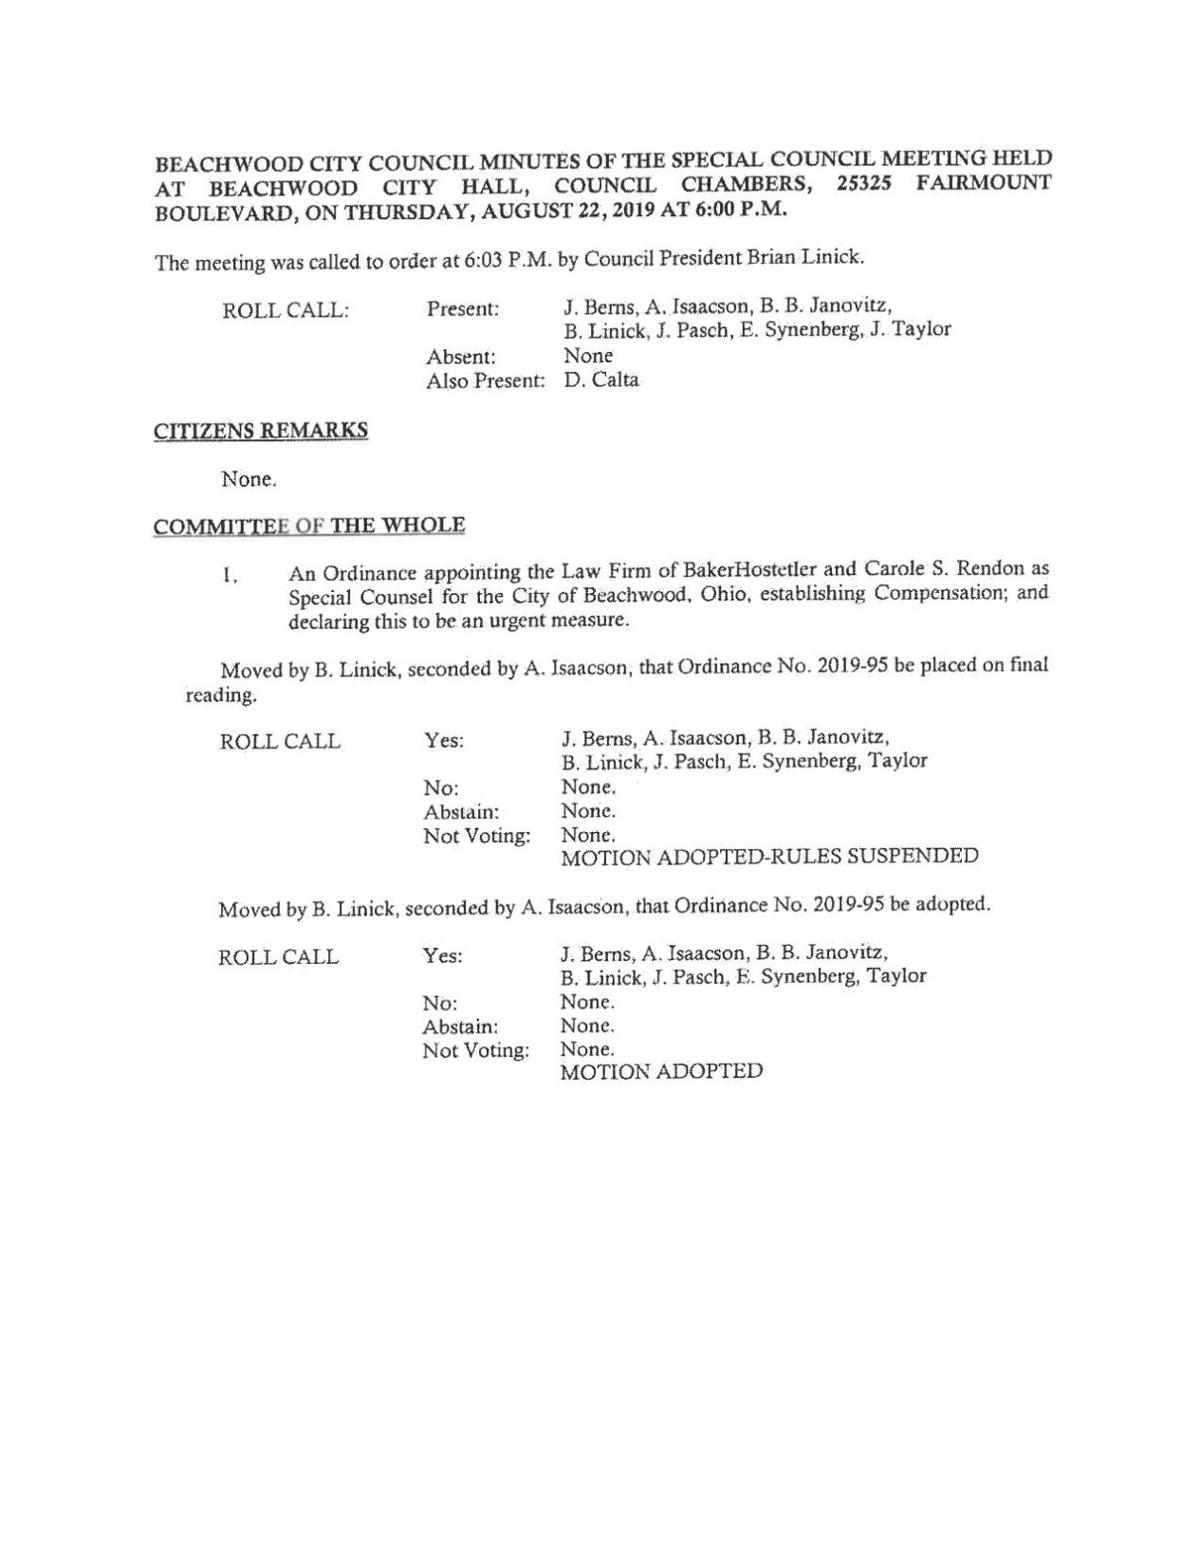 Beachwood City Council minutes of the special council meeting Aug. 22